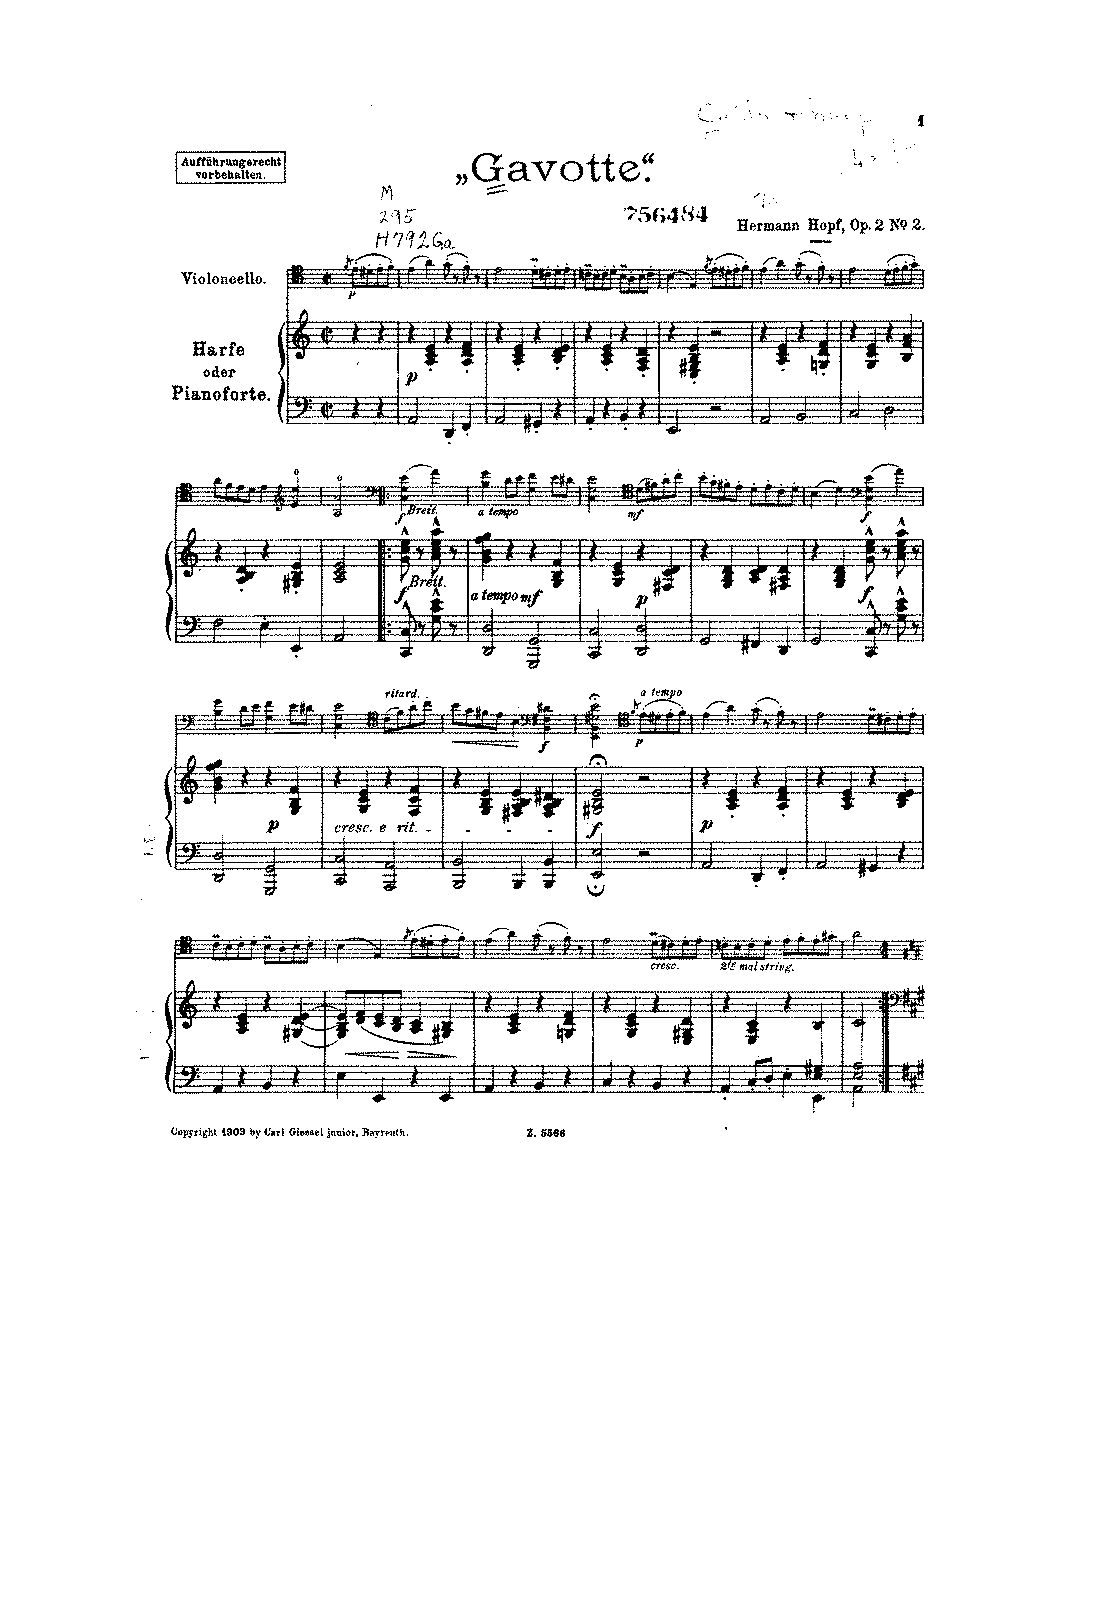 PMLP136620-Hopf - Gavotte for Cello and Harp or Piano Op2 No2 score.pdf